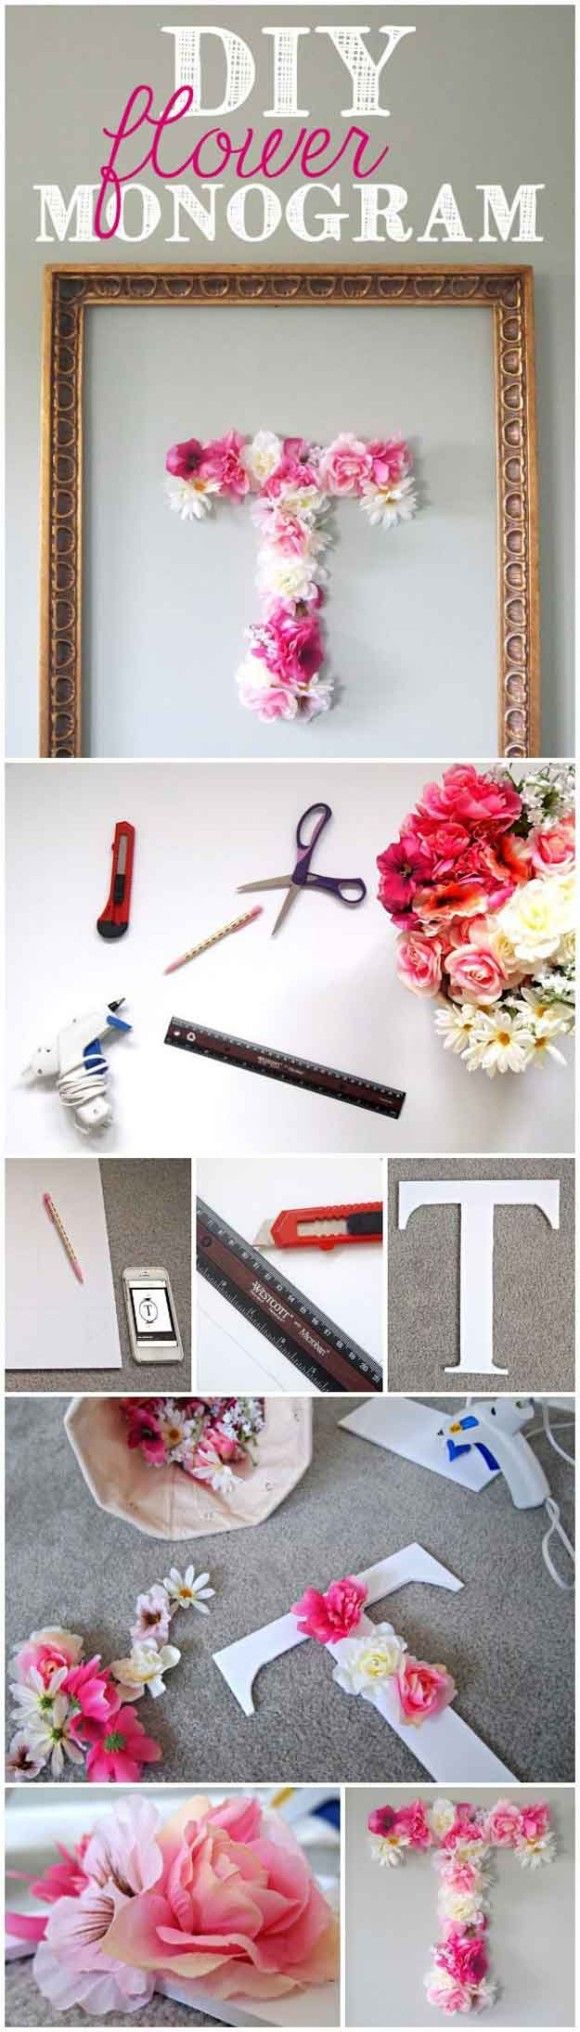 Best 25 Teen Room Decor Ideas On Pinterest Diy Bedroom Organization For Te